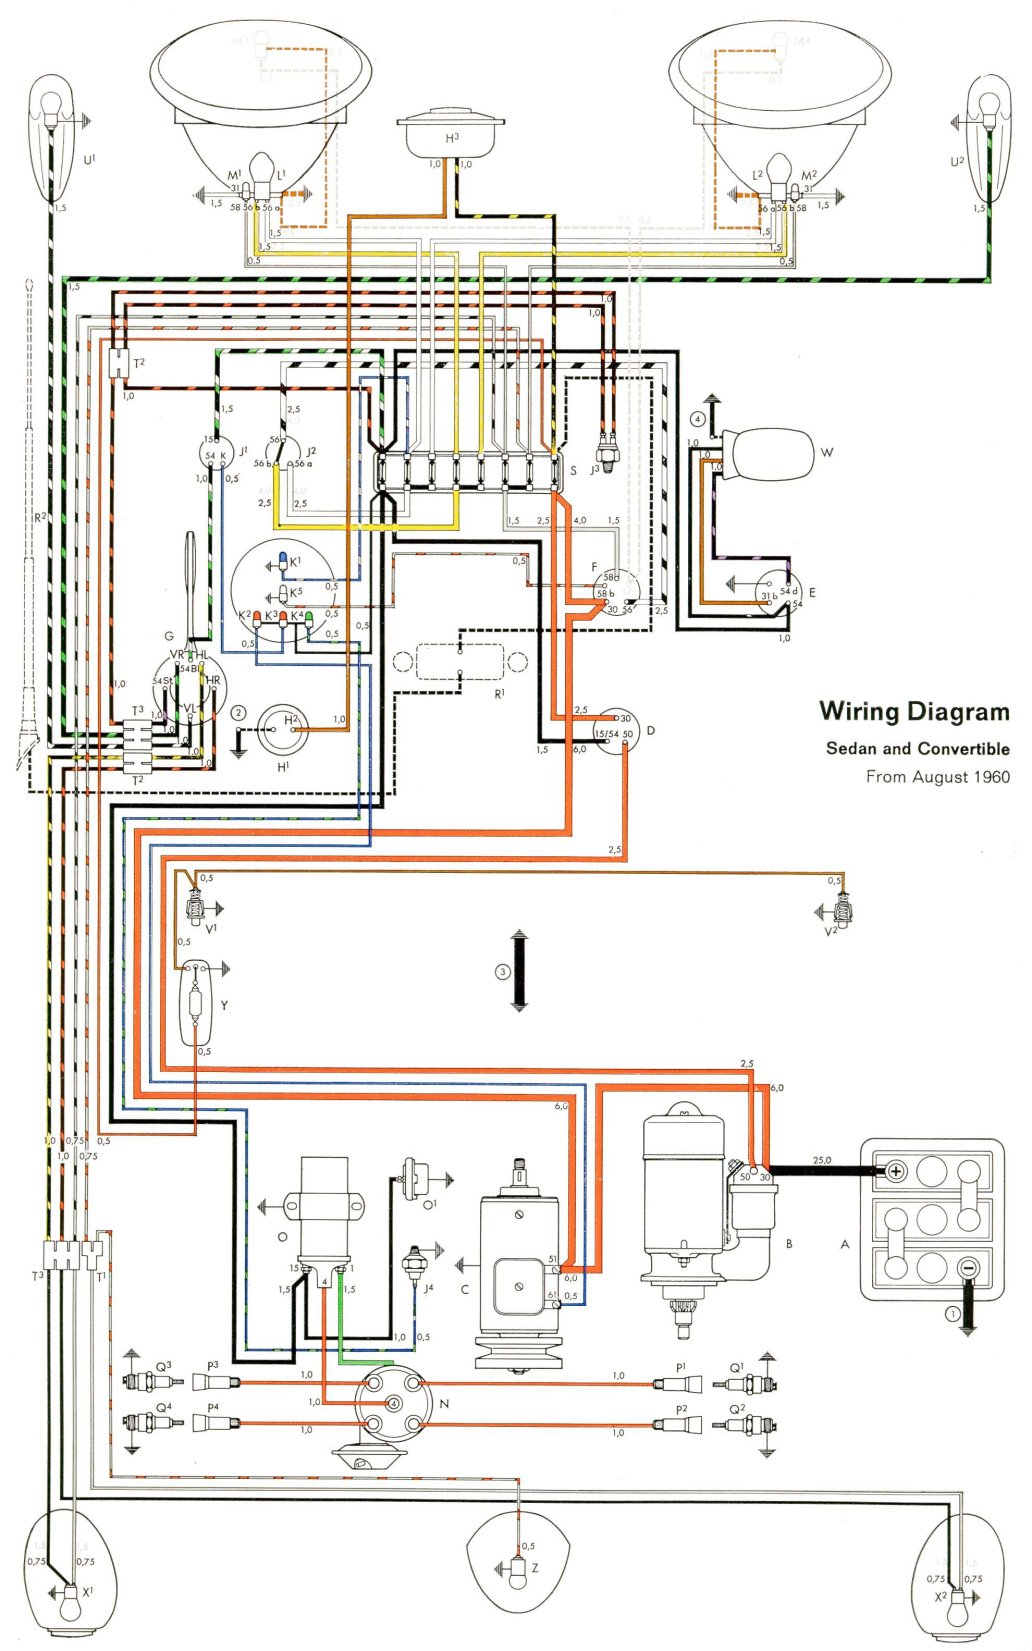 bug_61 1961 beetle wiring diagram thegoldenbug com 1973 vw wiring diagram at fashall.co